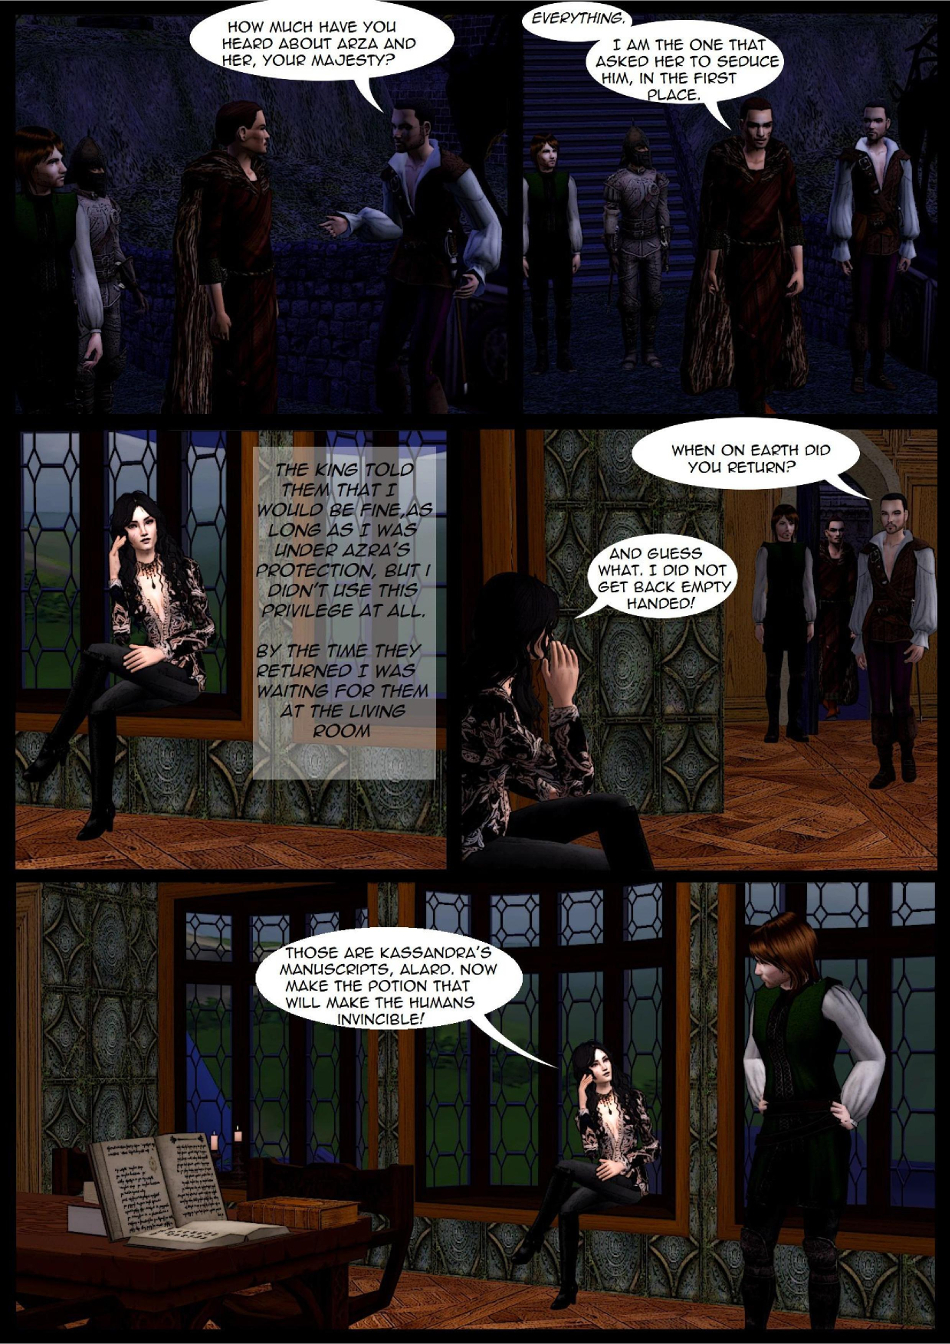 The throne room p.26